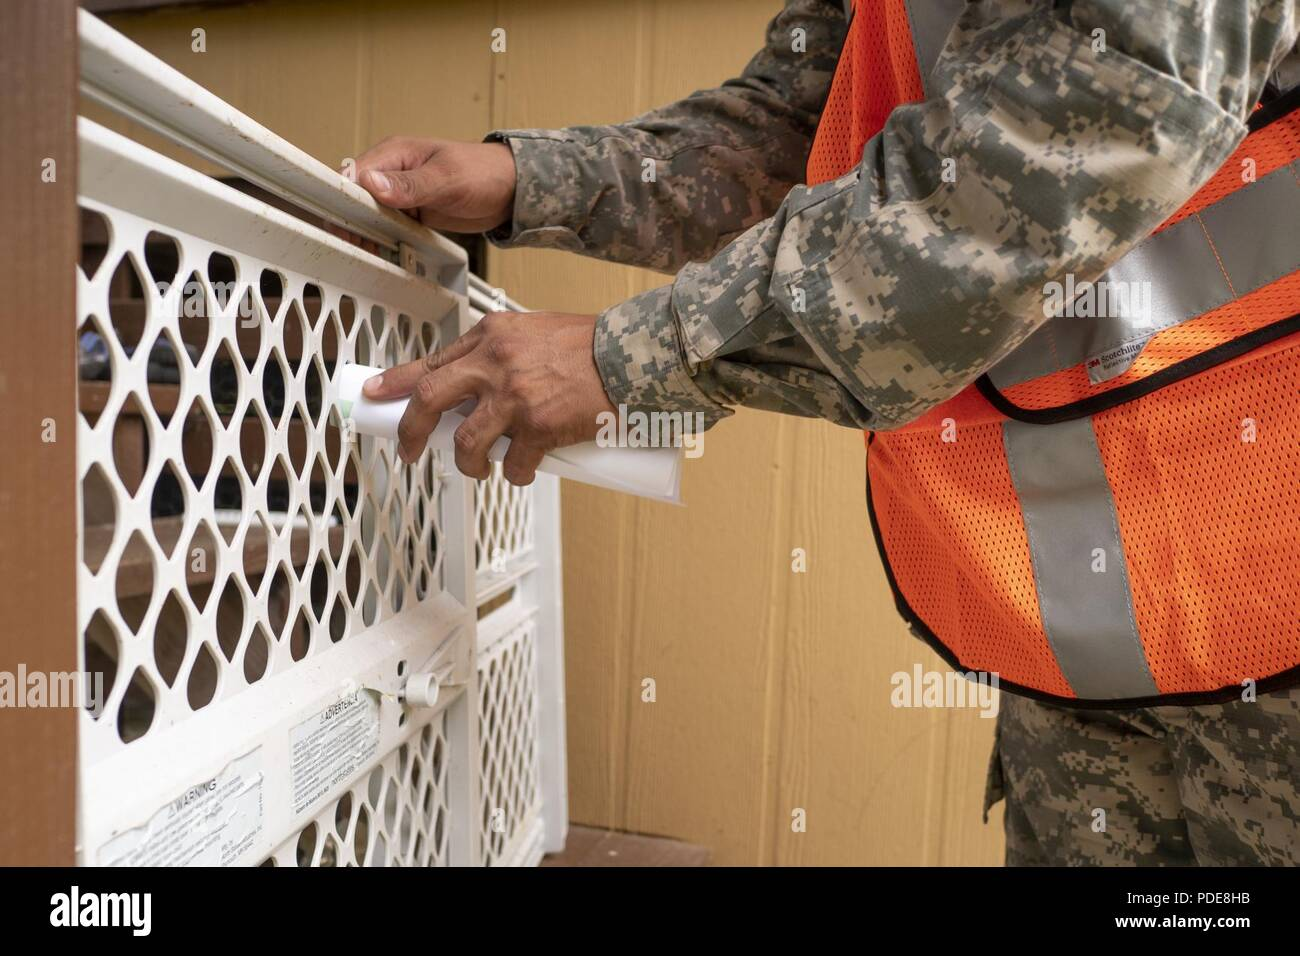 A Hawaii Army National Guard soldier leaves a leaflet at a resident's house community May 17, 2018, at Upper Puna District, Hawaii. Representatives from Task Force Hawaii supported the County of Hawaii Civil Defense's effort in informing residents of potential hazards and precautions to take in response to the ongoing volcanic activity. - Stock Image